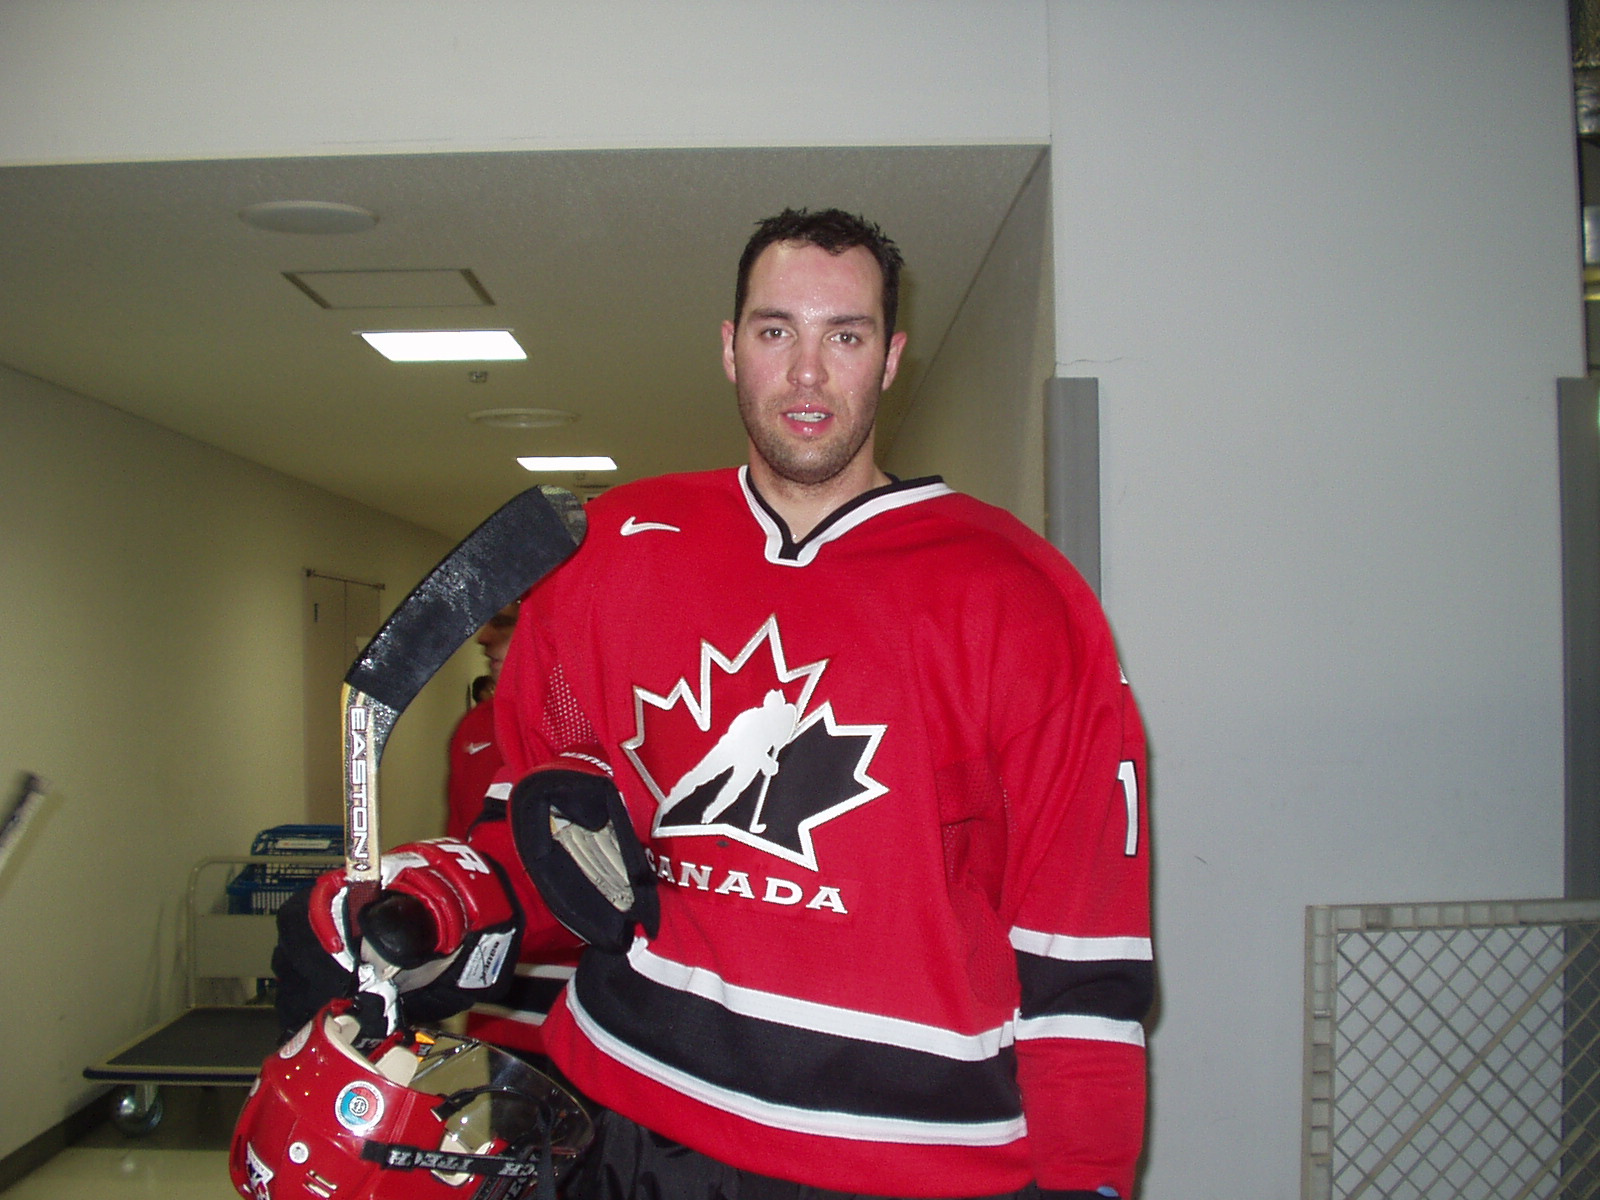 Joel in his Team Canada jersey